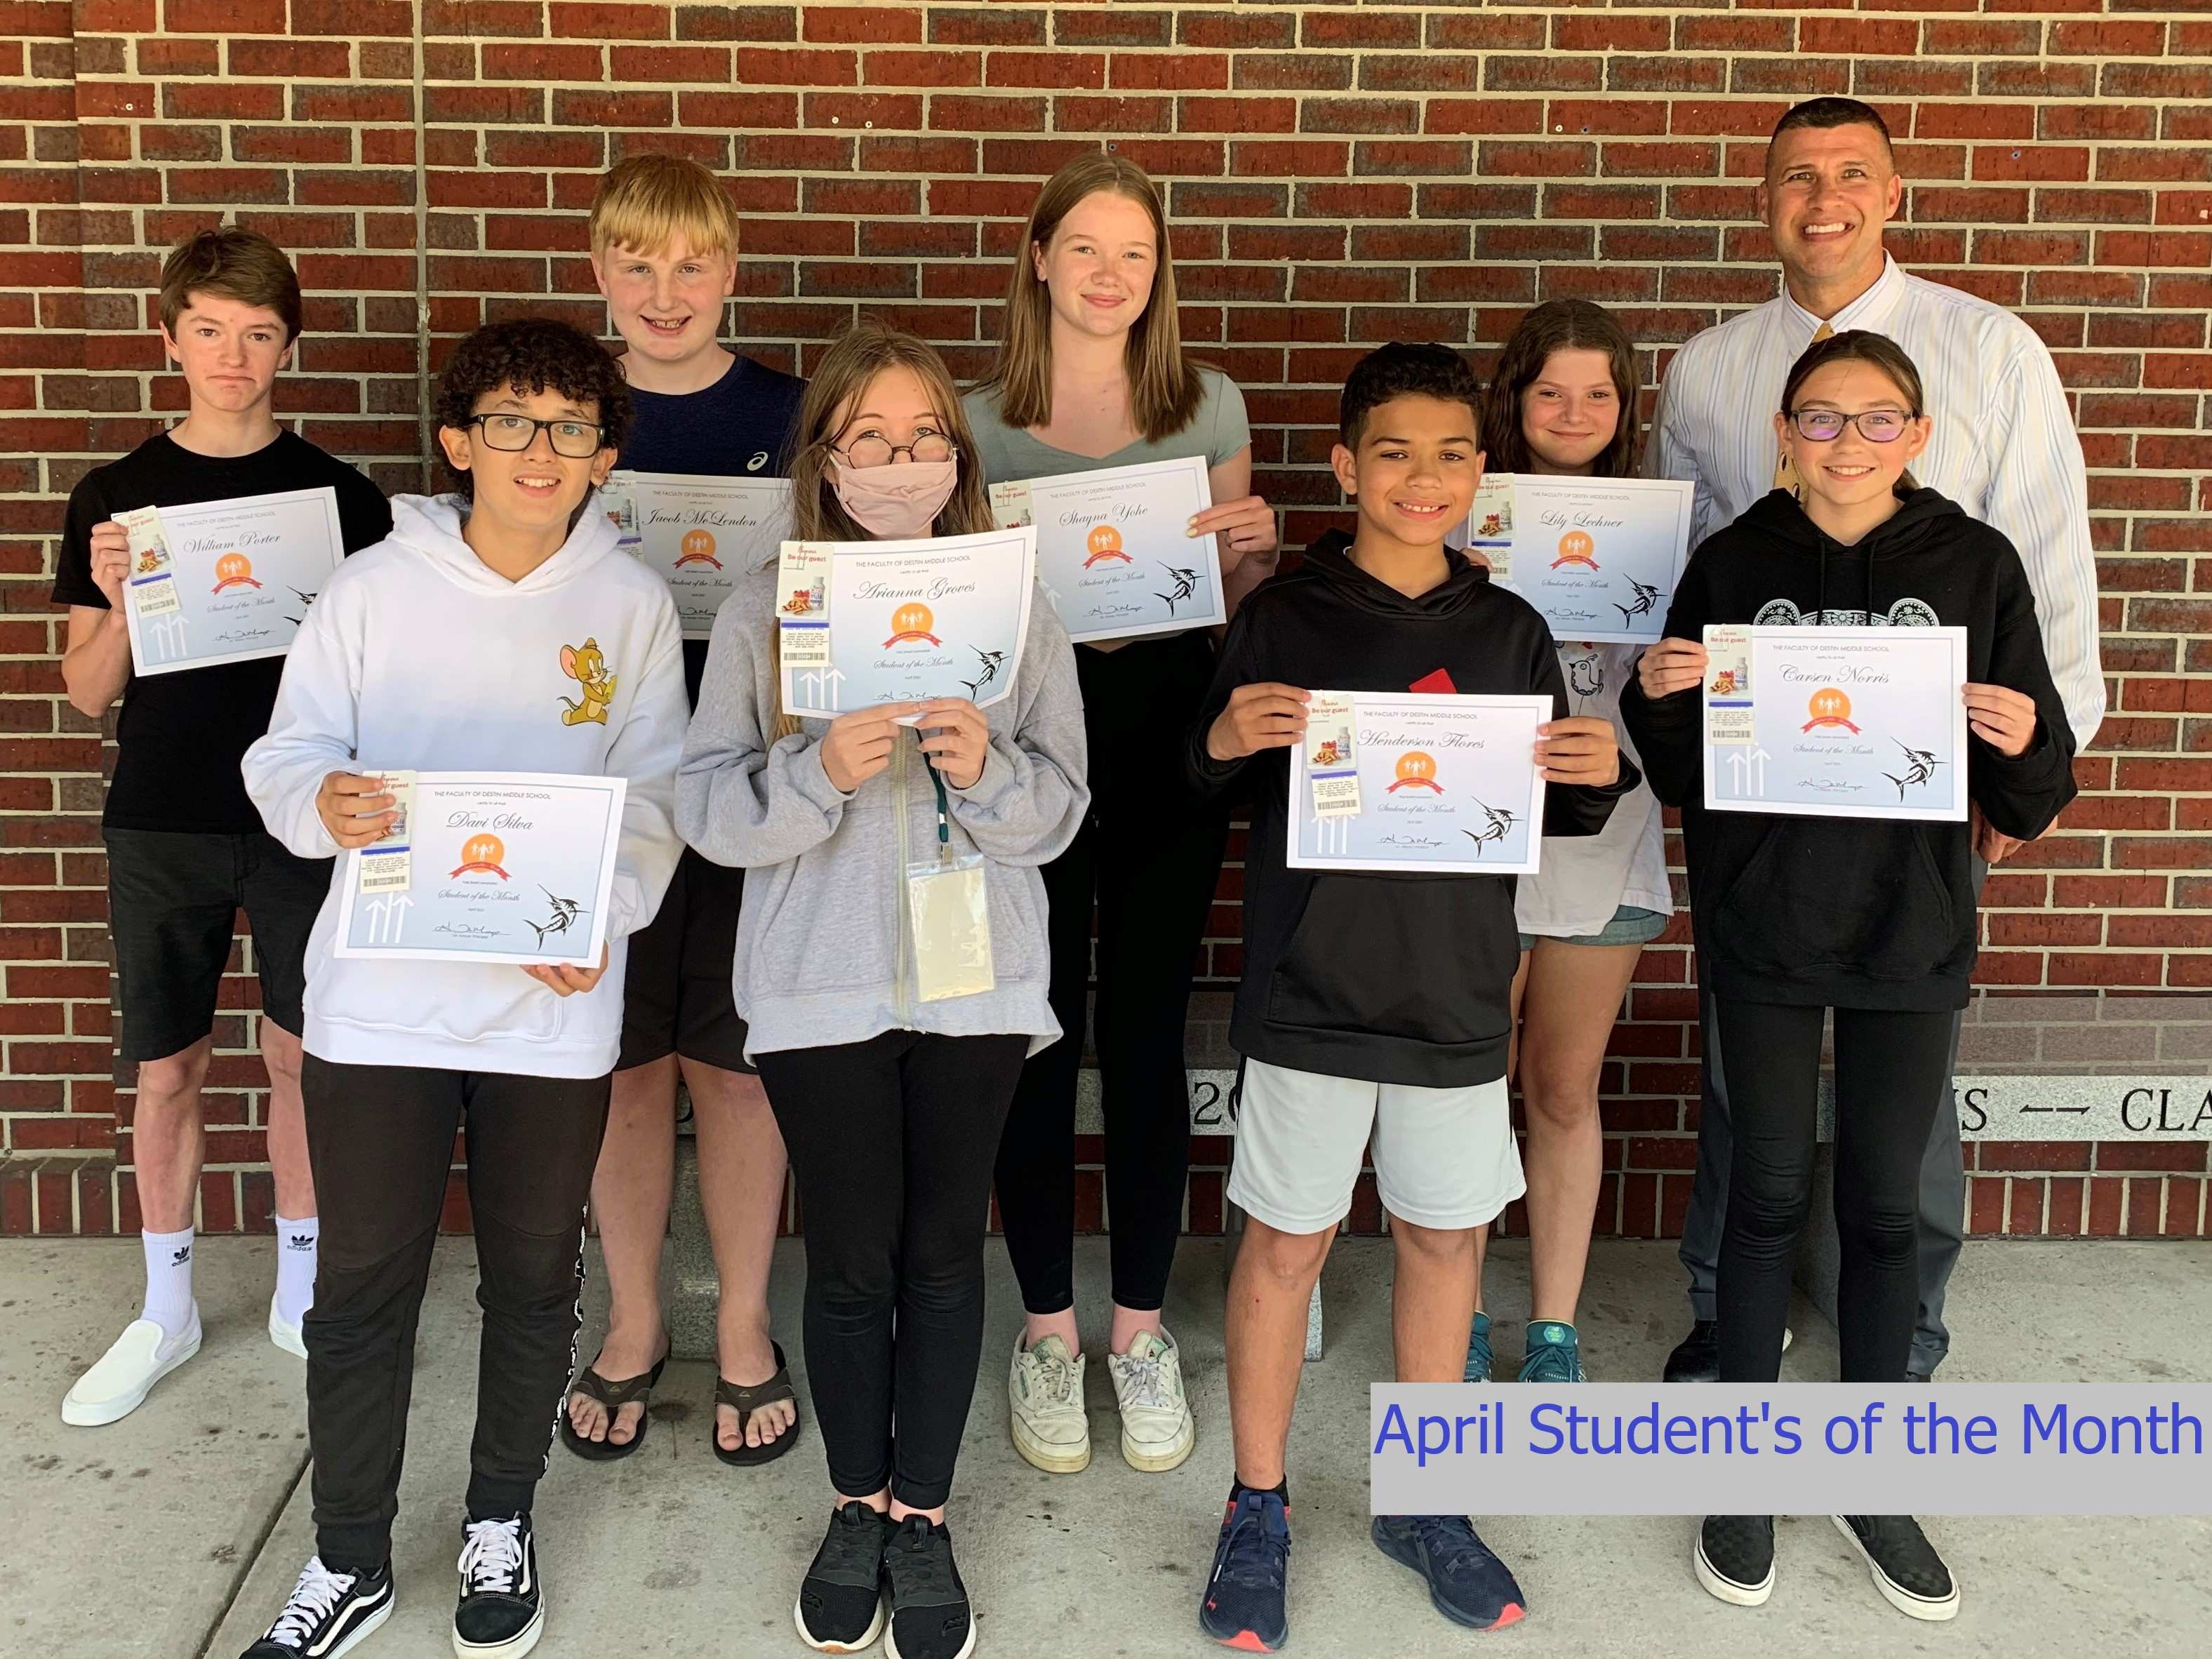 April Student's of the Month